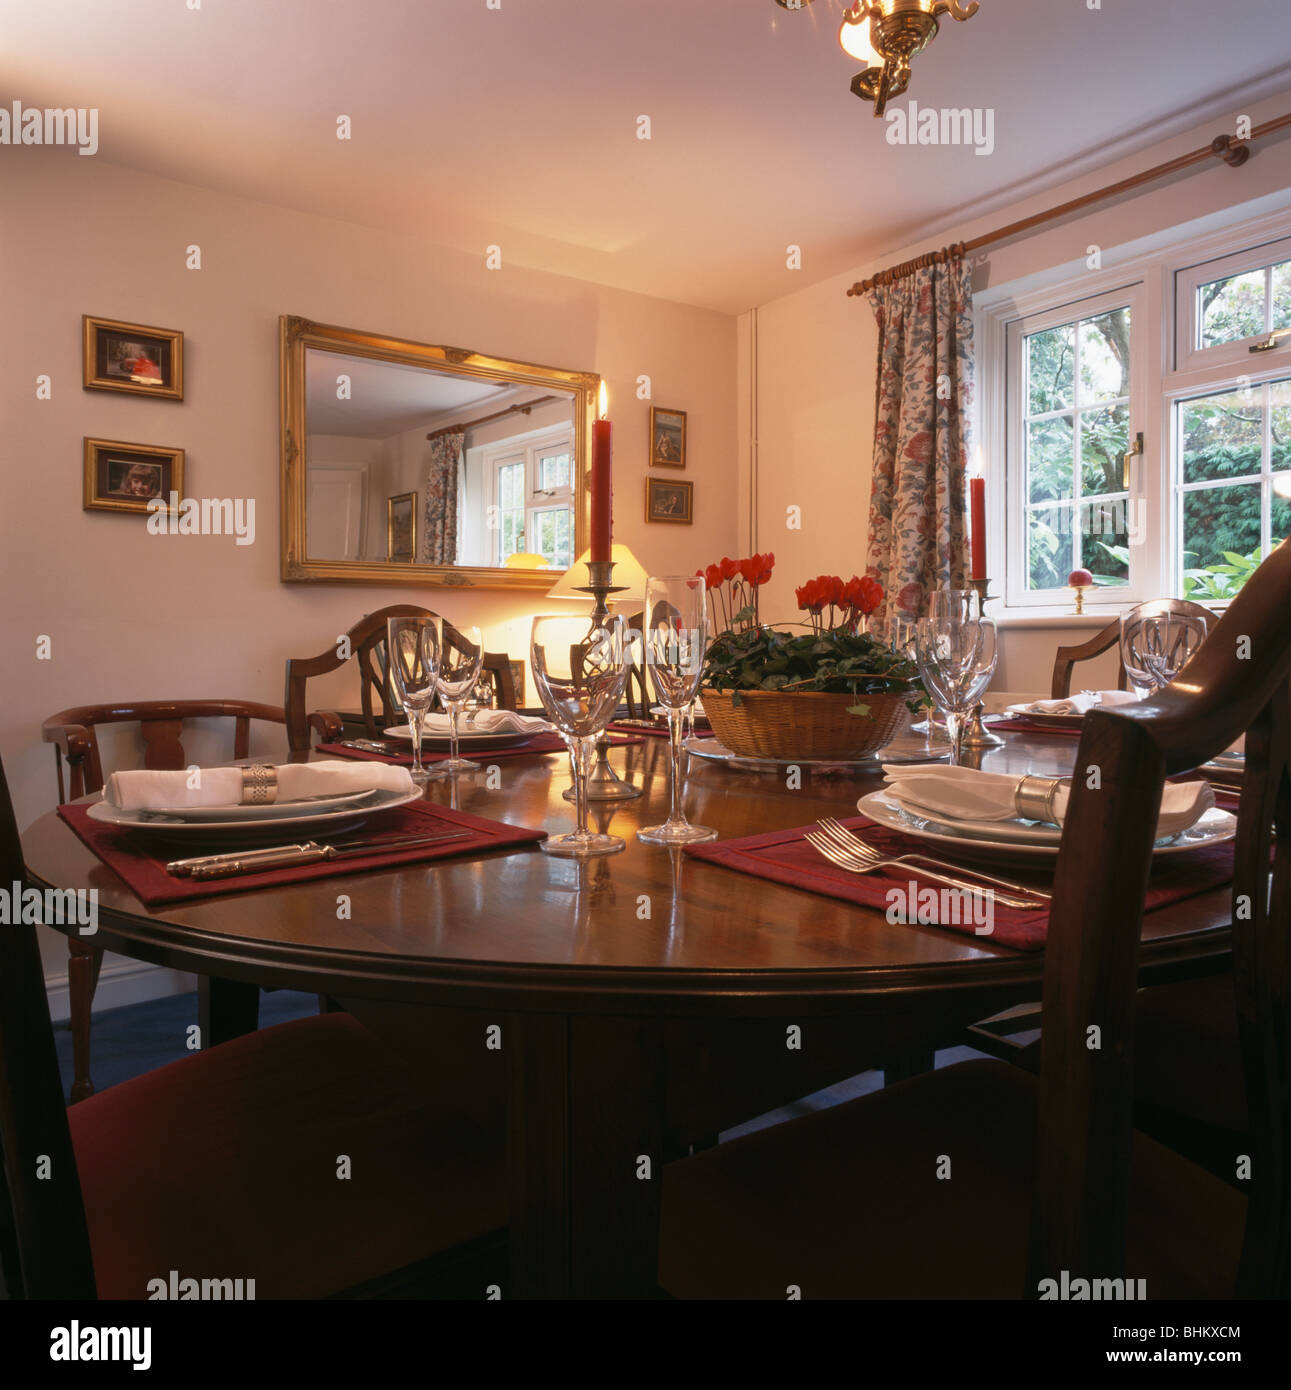 Rectangular Gilt Mirror In Traditional Dining Room With Wine Glasses Stock Photo Alamy